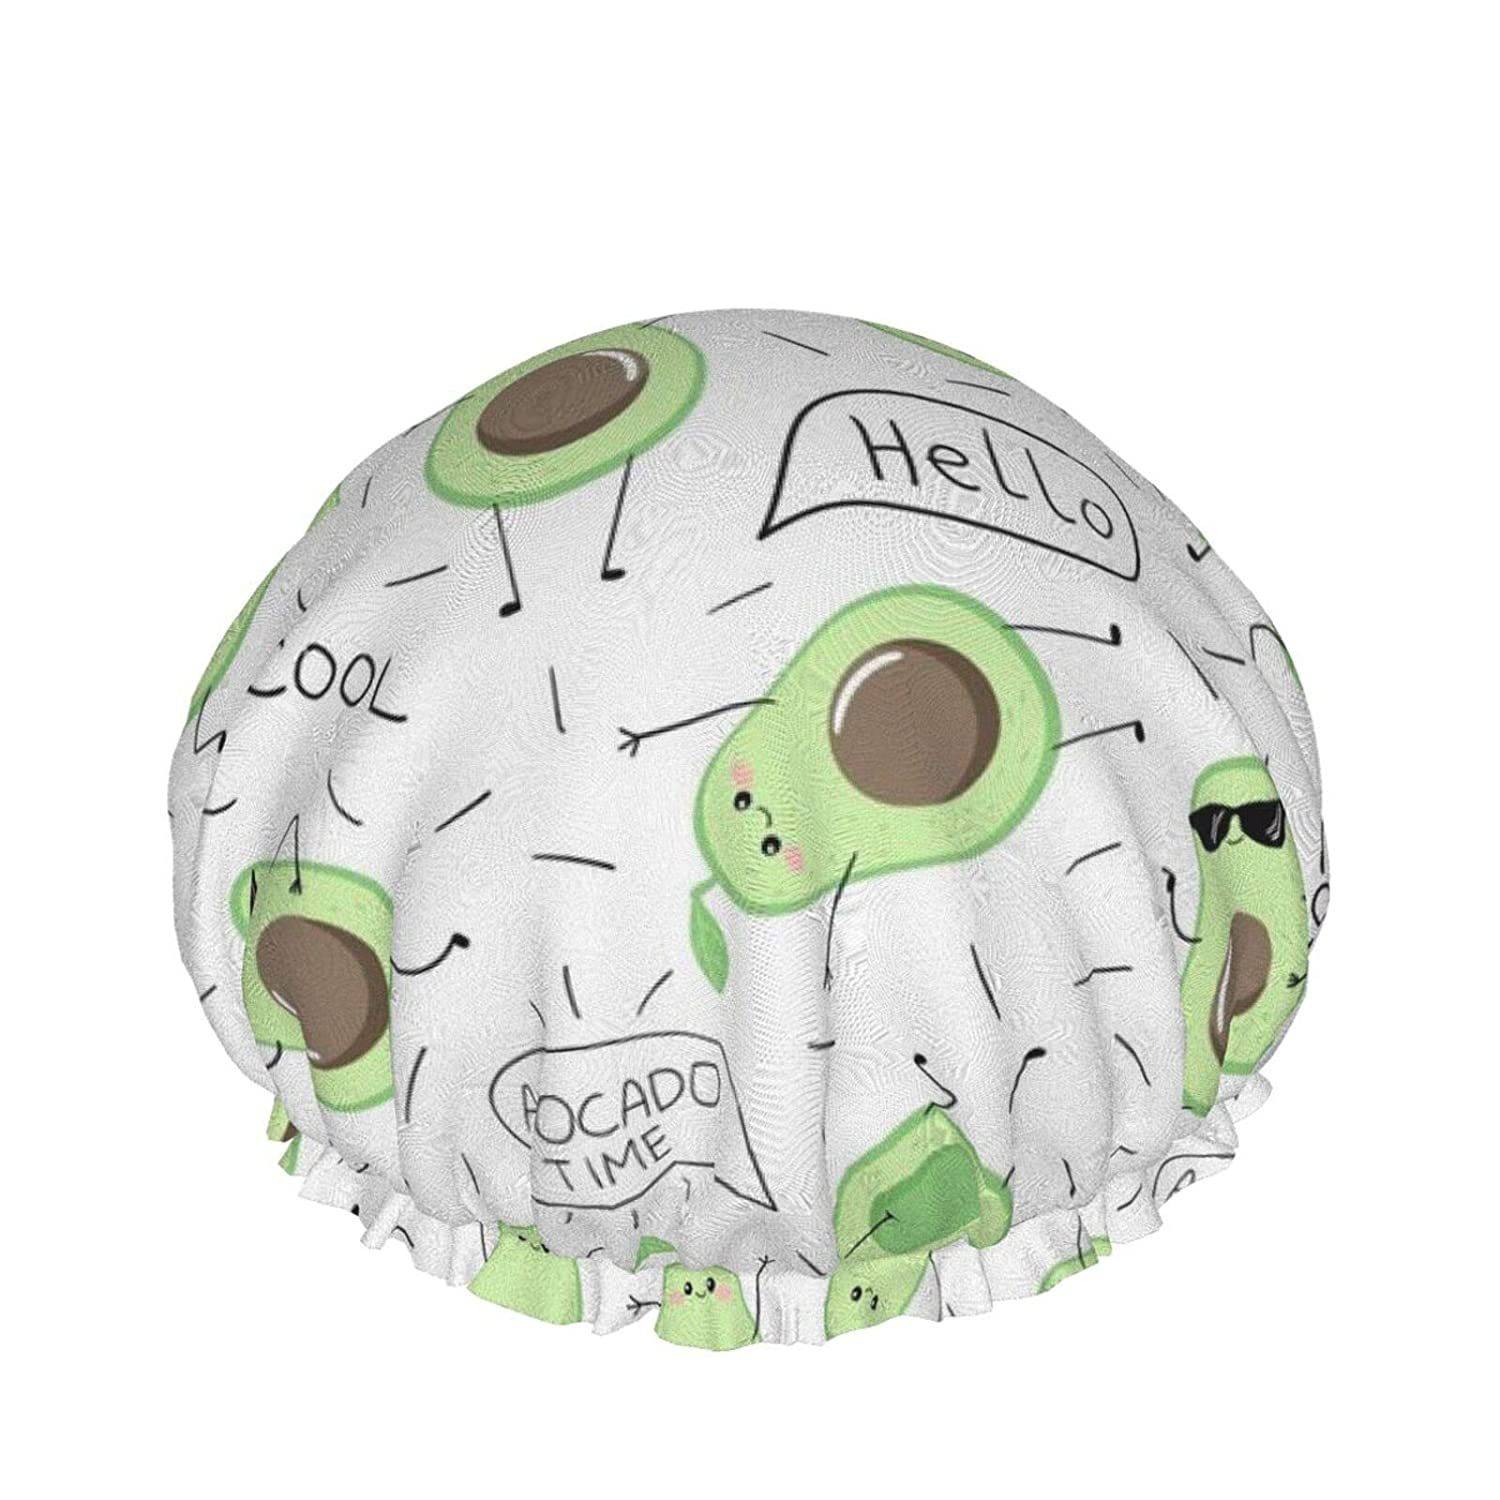 Double Waterproof Layers Shower Cap, Funny Avocado Printed Shower Caps For Women, Double Waterproof Layers Bathing Shower Hat Hair Protection Eva Shower Caps Reusable, Medium Size